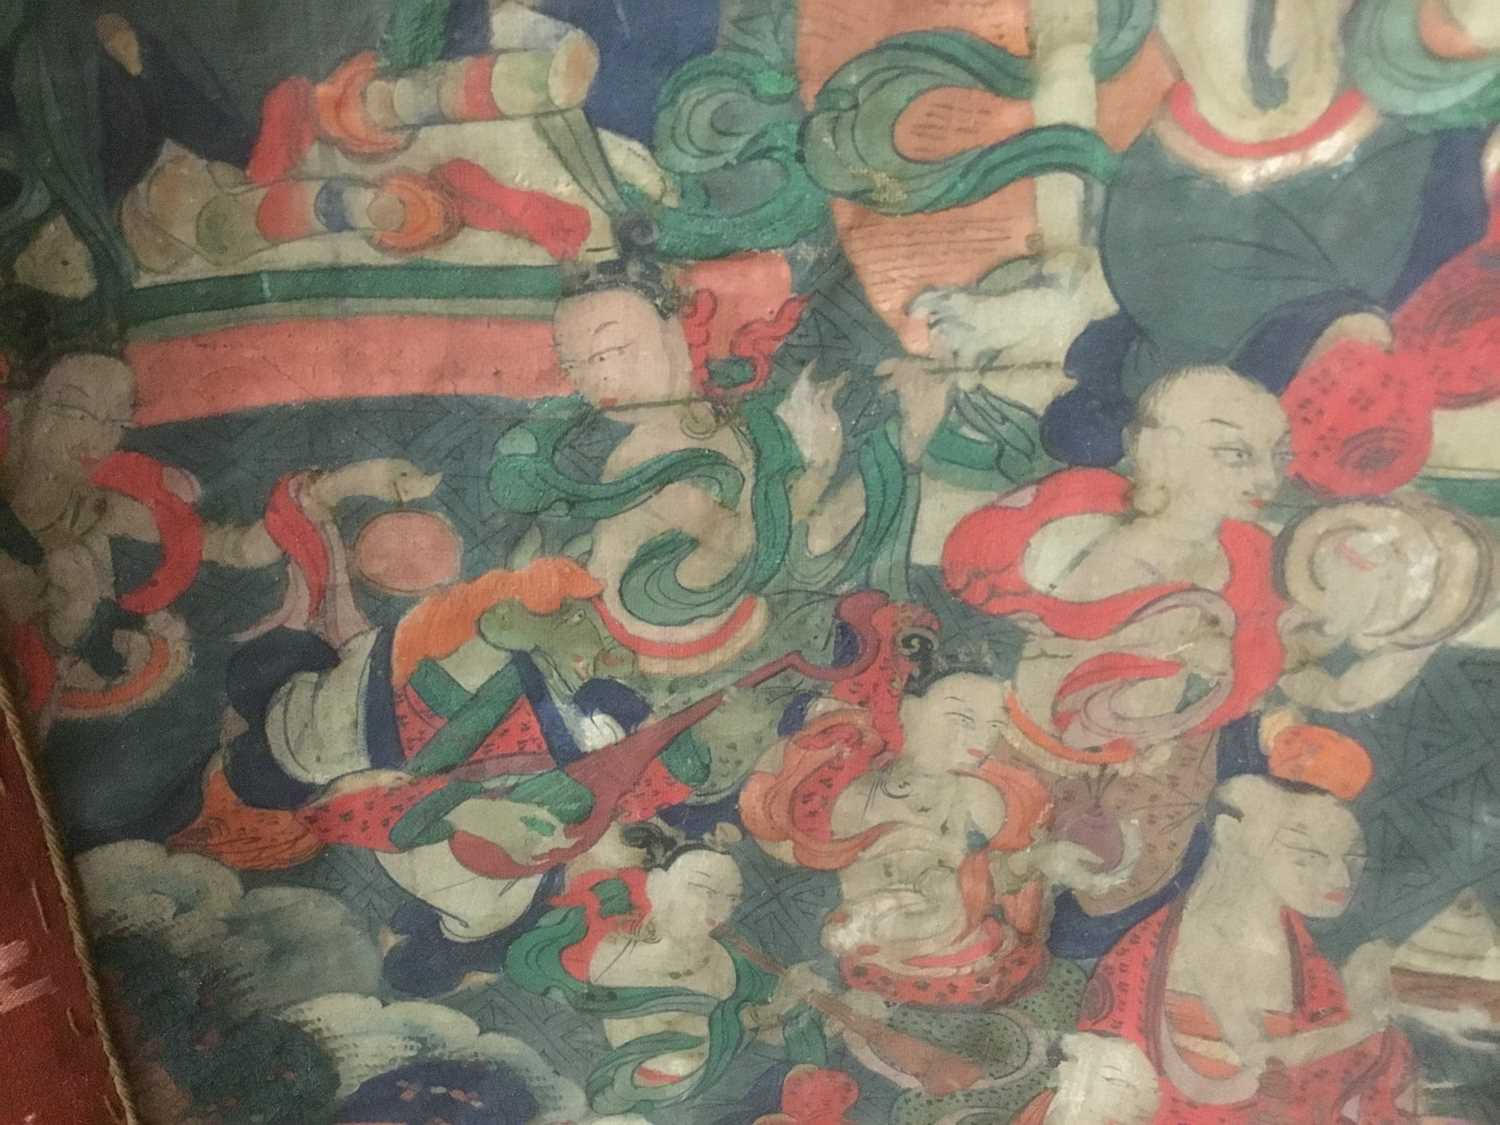 Early Tibetan thangka together with a related framed letter - Image 8 of 14